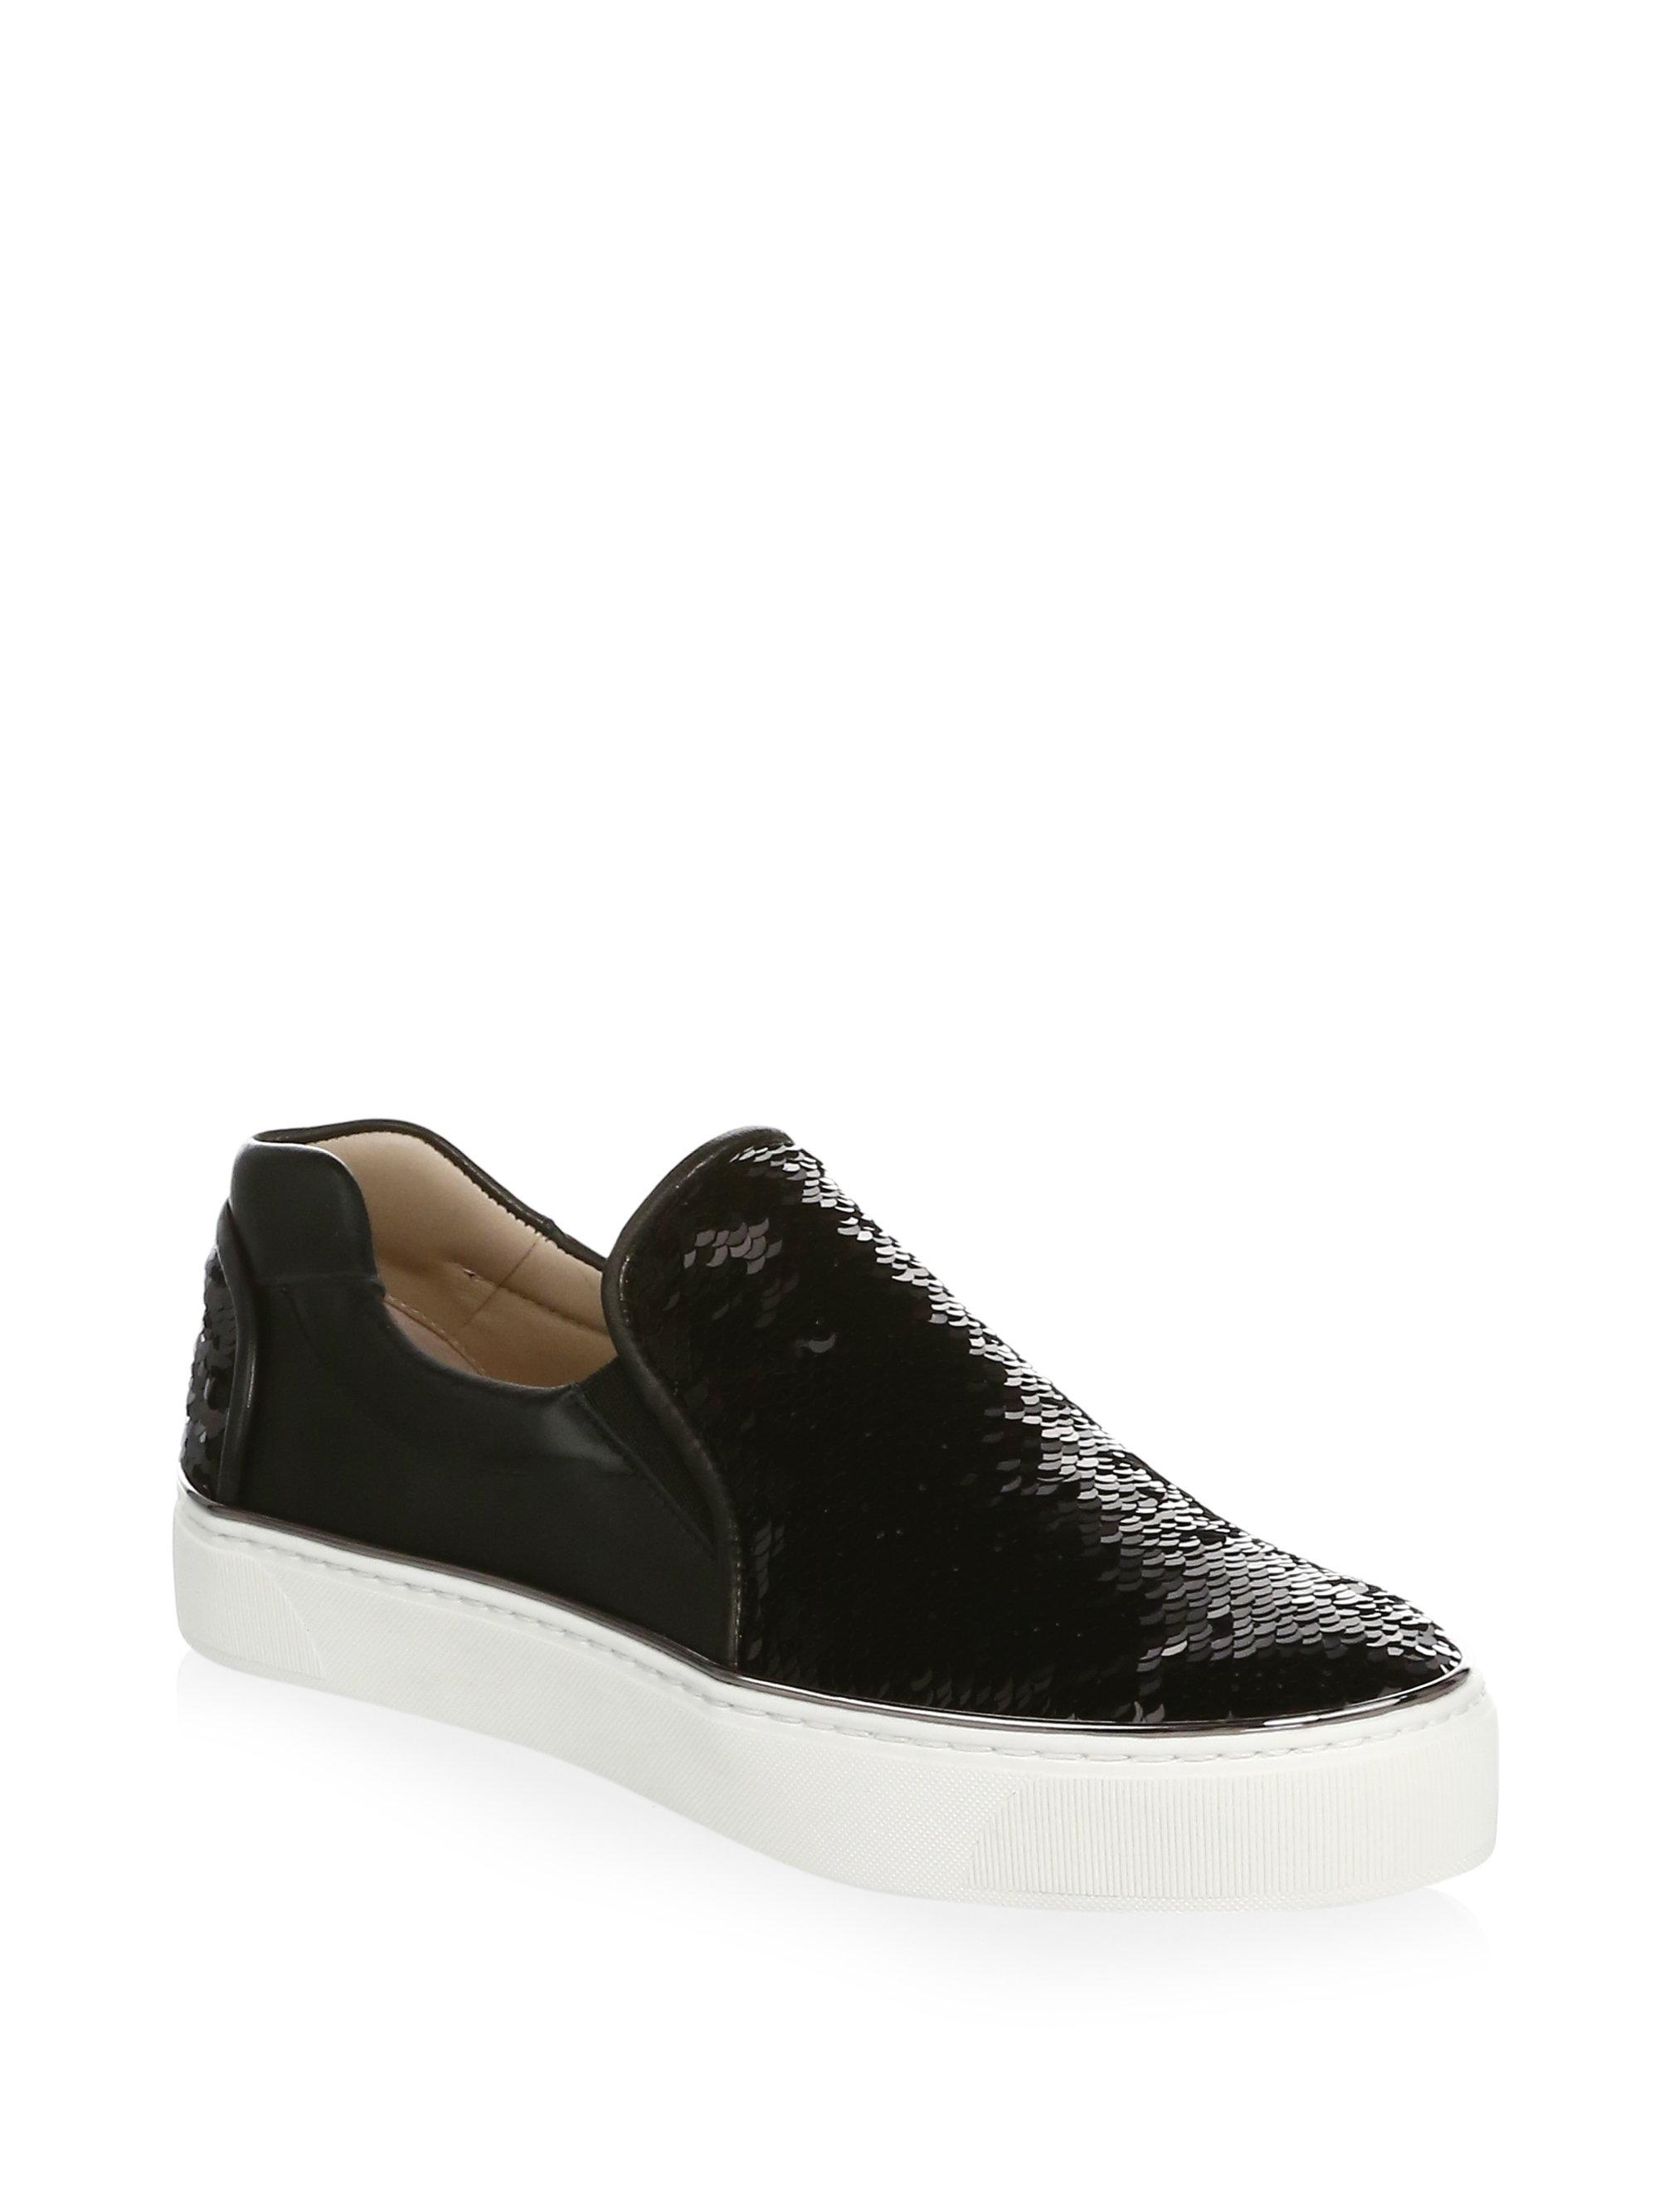 Stuart Weitzman Sequined Leather Sneakers n3AbK5nK